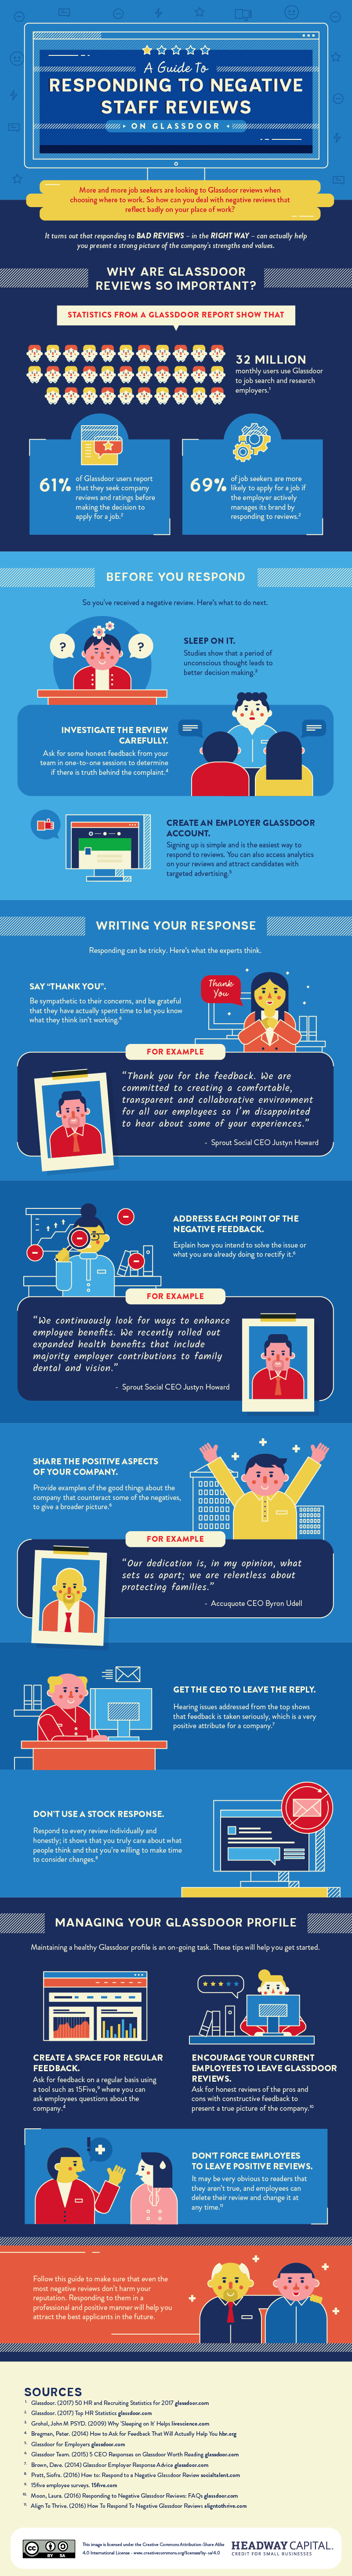 Strategies to Tackle Negative Staff Reviews on Glassdoor - Infographic